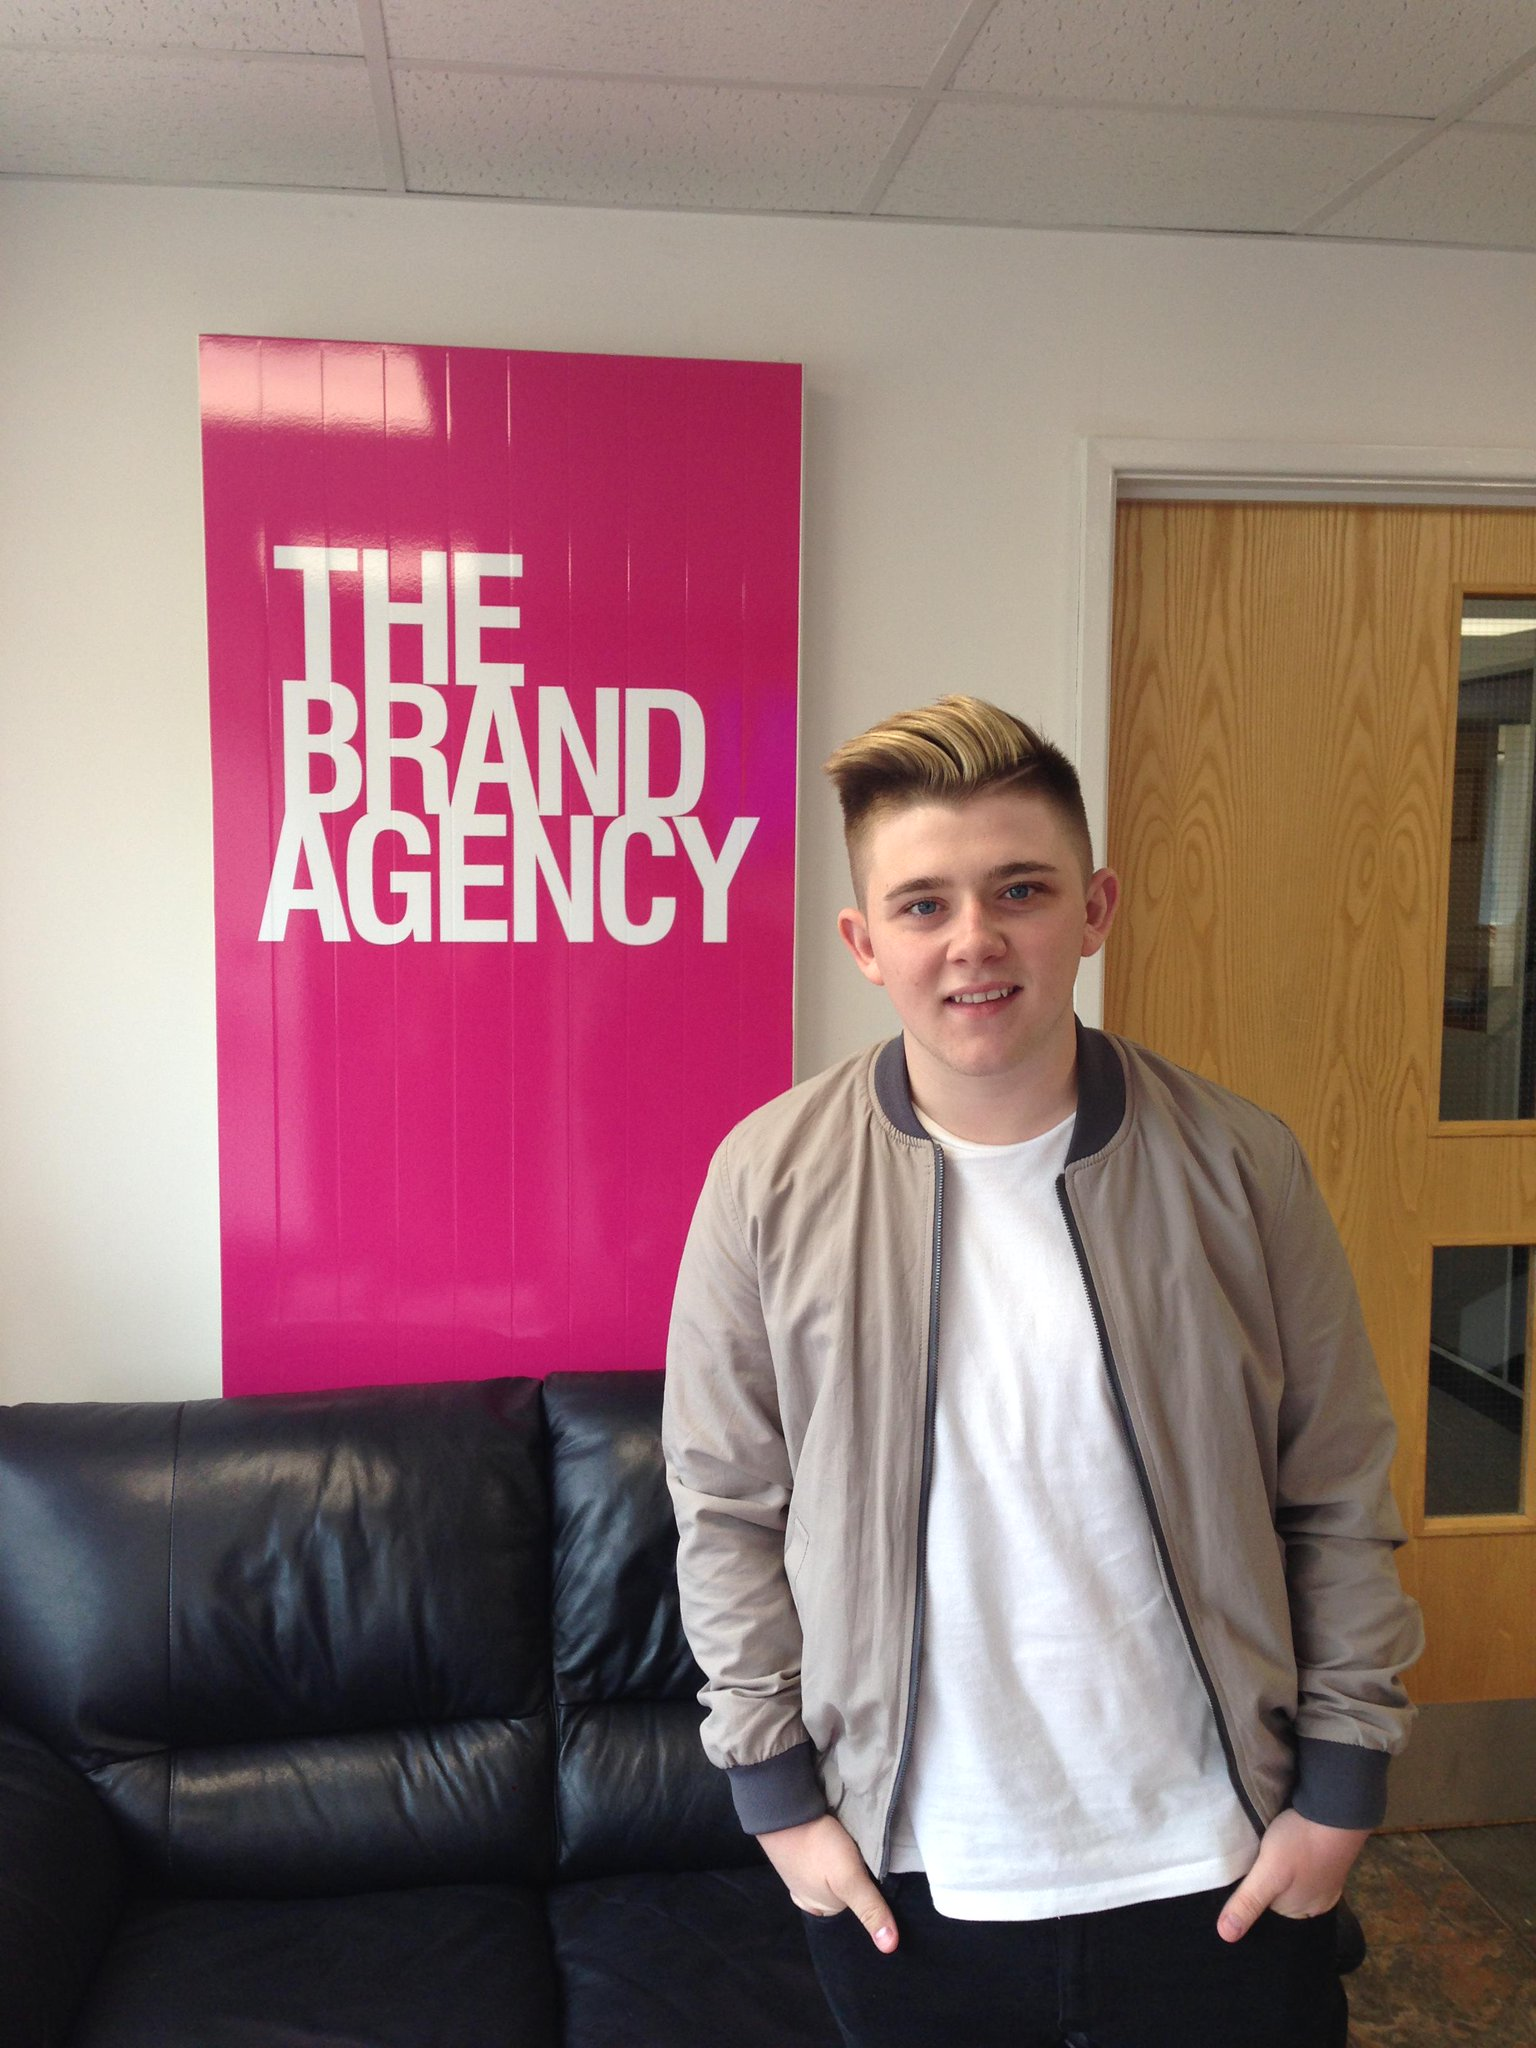 RT @ChampionsUKplc: Great to have @nickymcdonald1 pay a visit to Champions HQ this morning! We hope you have a great day! #celebguest http:…